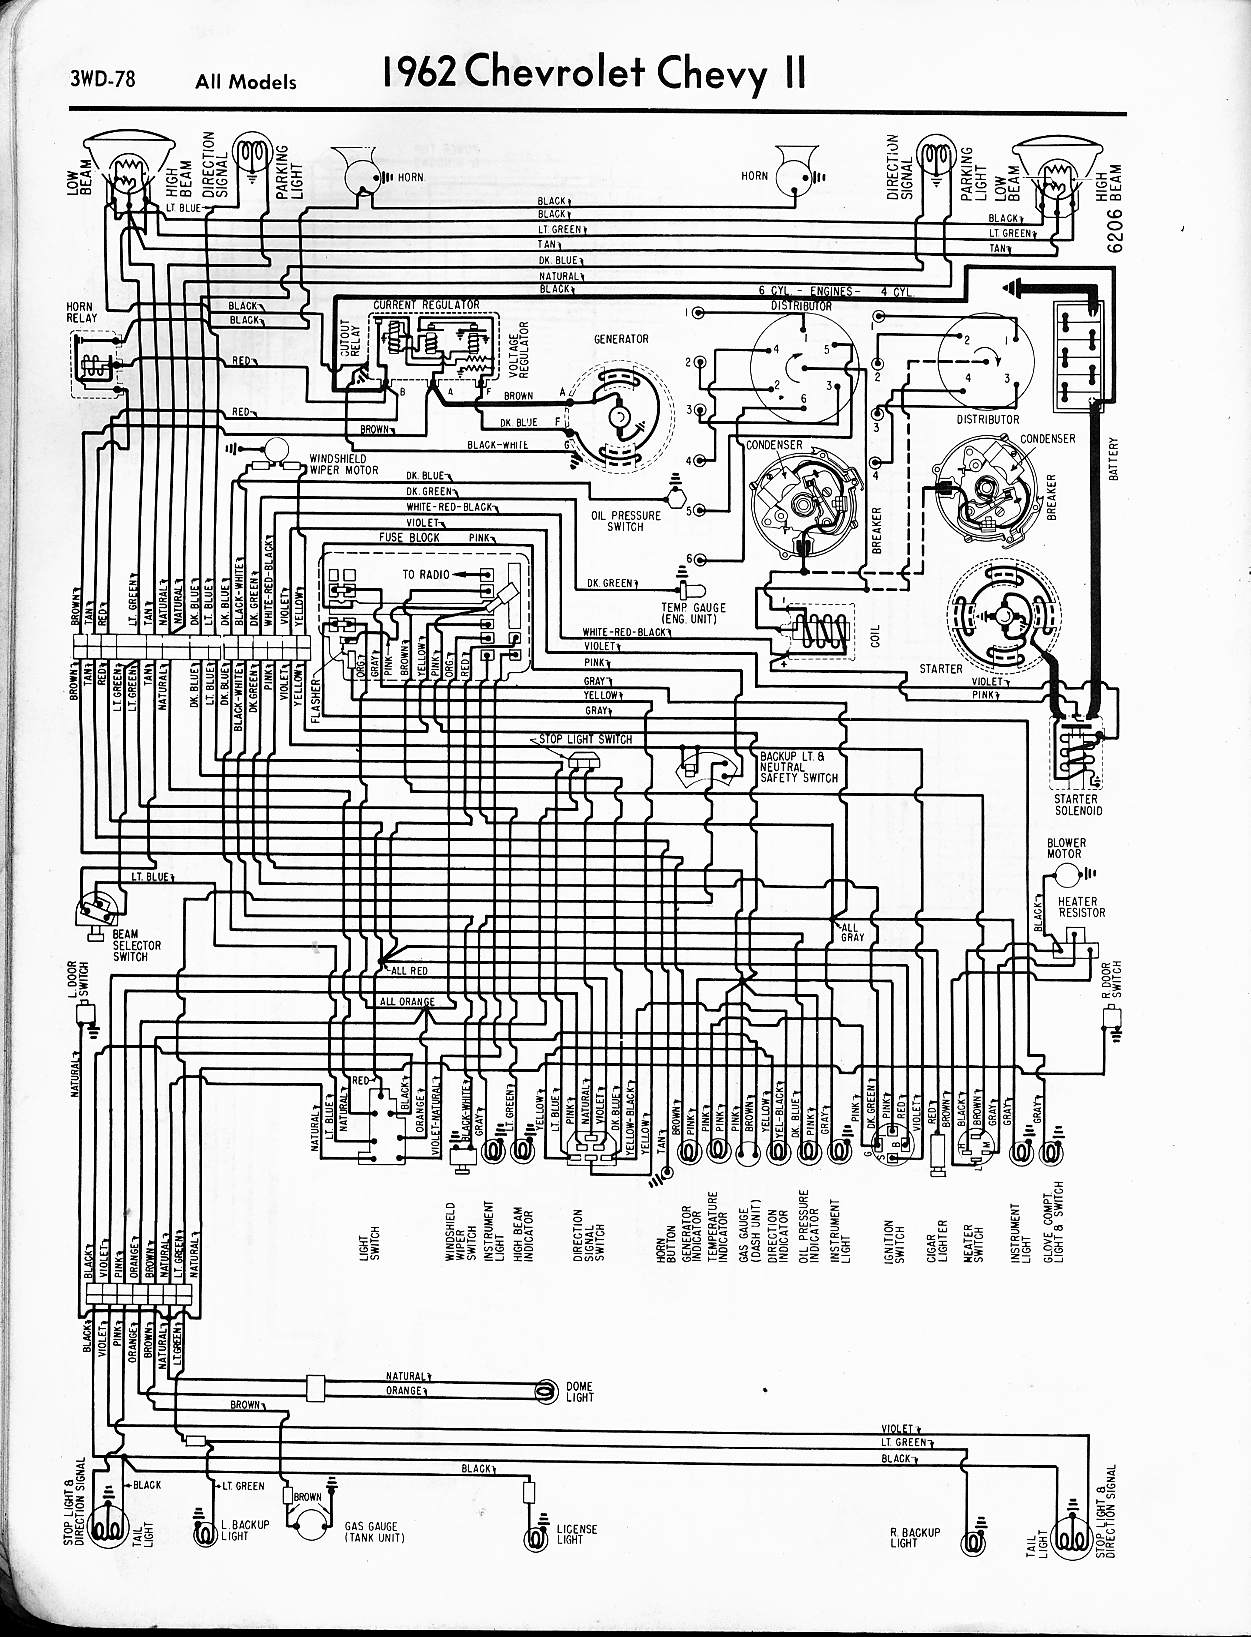 MWireChev62_3WD 078 1968 impala wiring diagram 1975 impala wiring diagram \u2022 wiring 1967 chevelle wiring diagram pdf at reclaimingppi.co